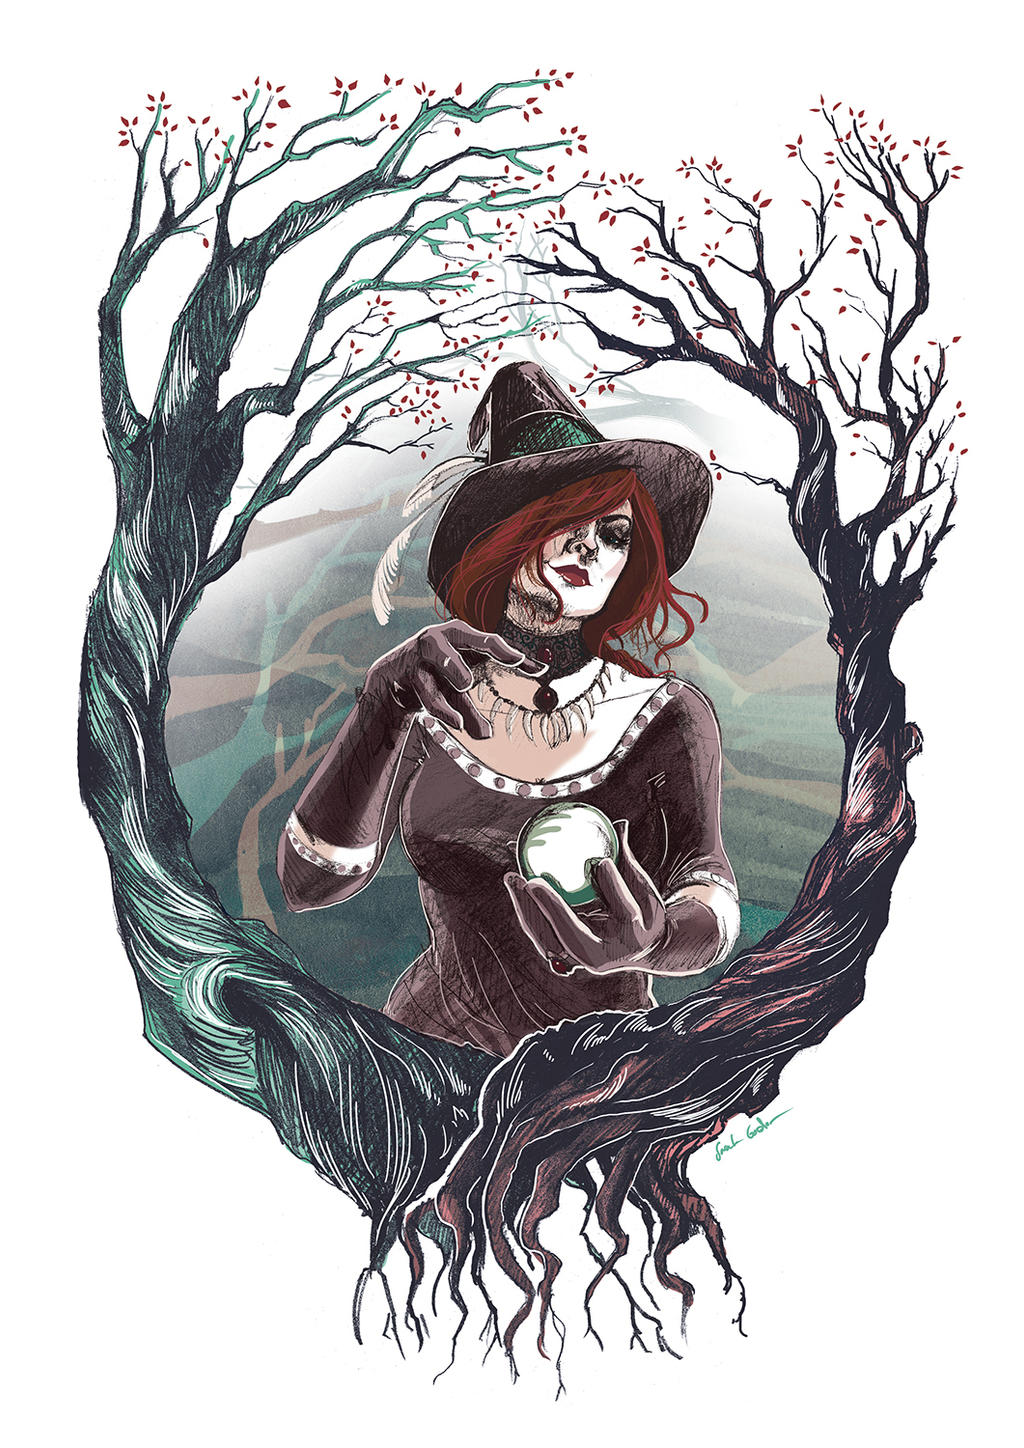 Hedge Witch By Ratherlemony On Deviantart The witch by zulisja on deviantart. deviantart